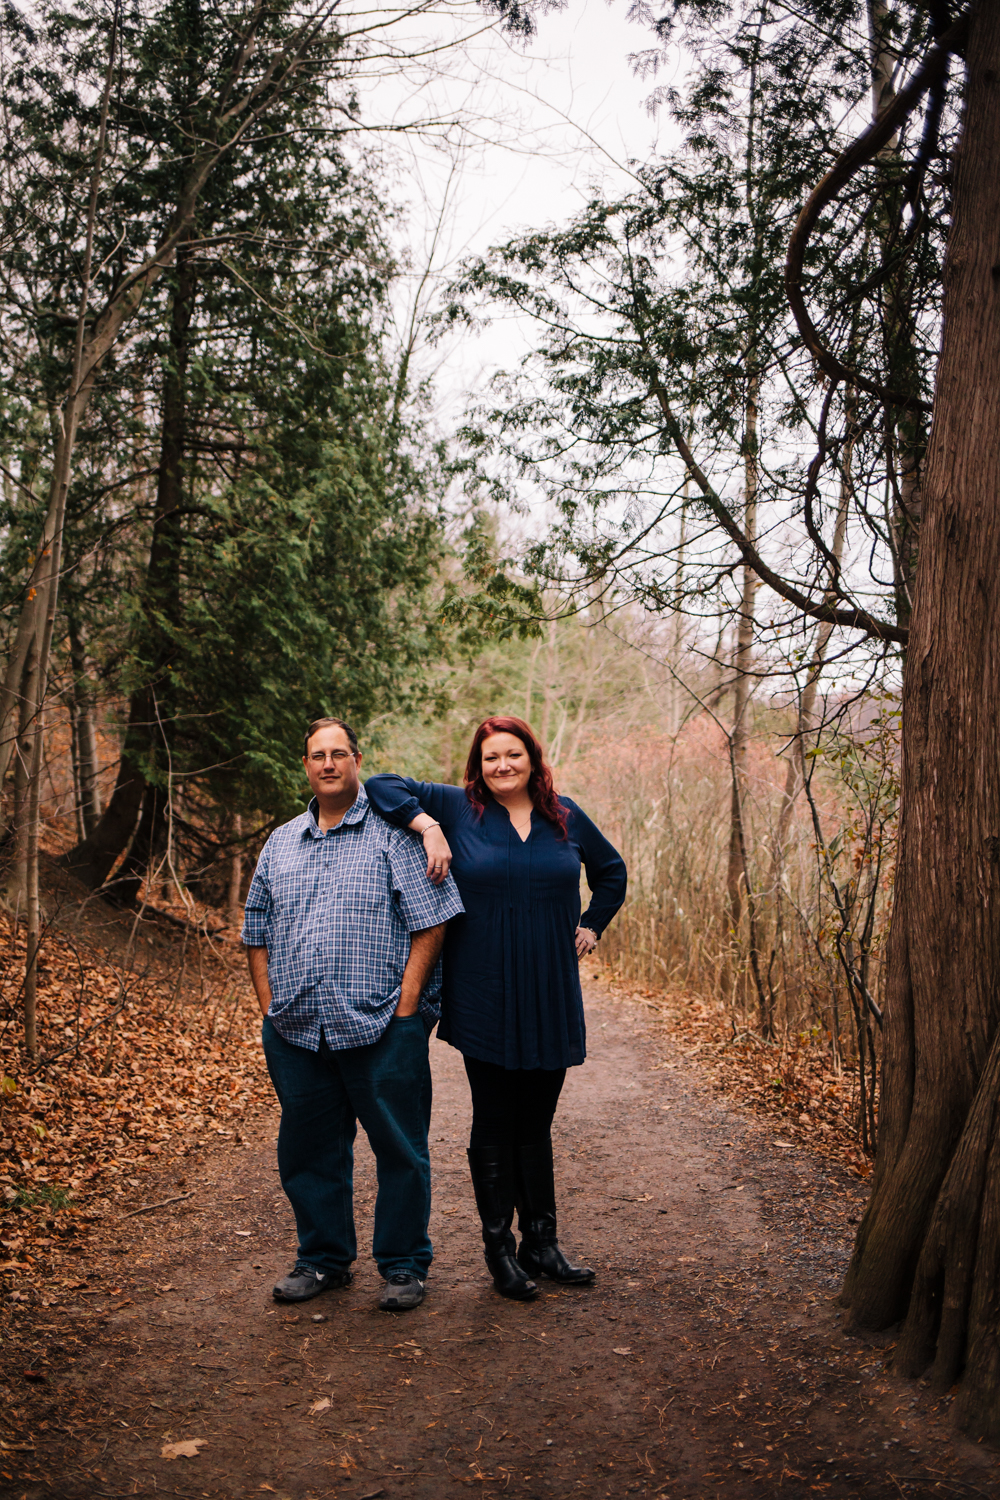 Woman stands with arm on mans shoulder. They are in the woods on a trail and wearing navy blue shirts. Engagement photograph taken by Calypso Rae Photography.